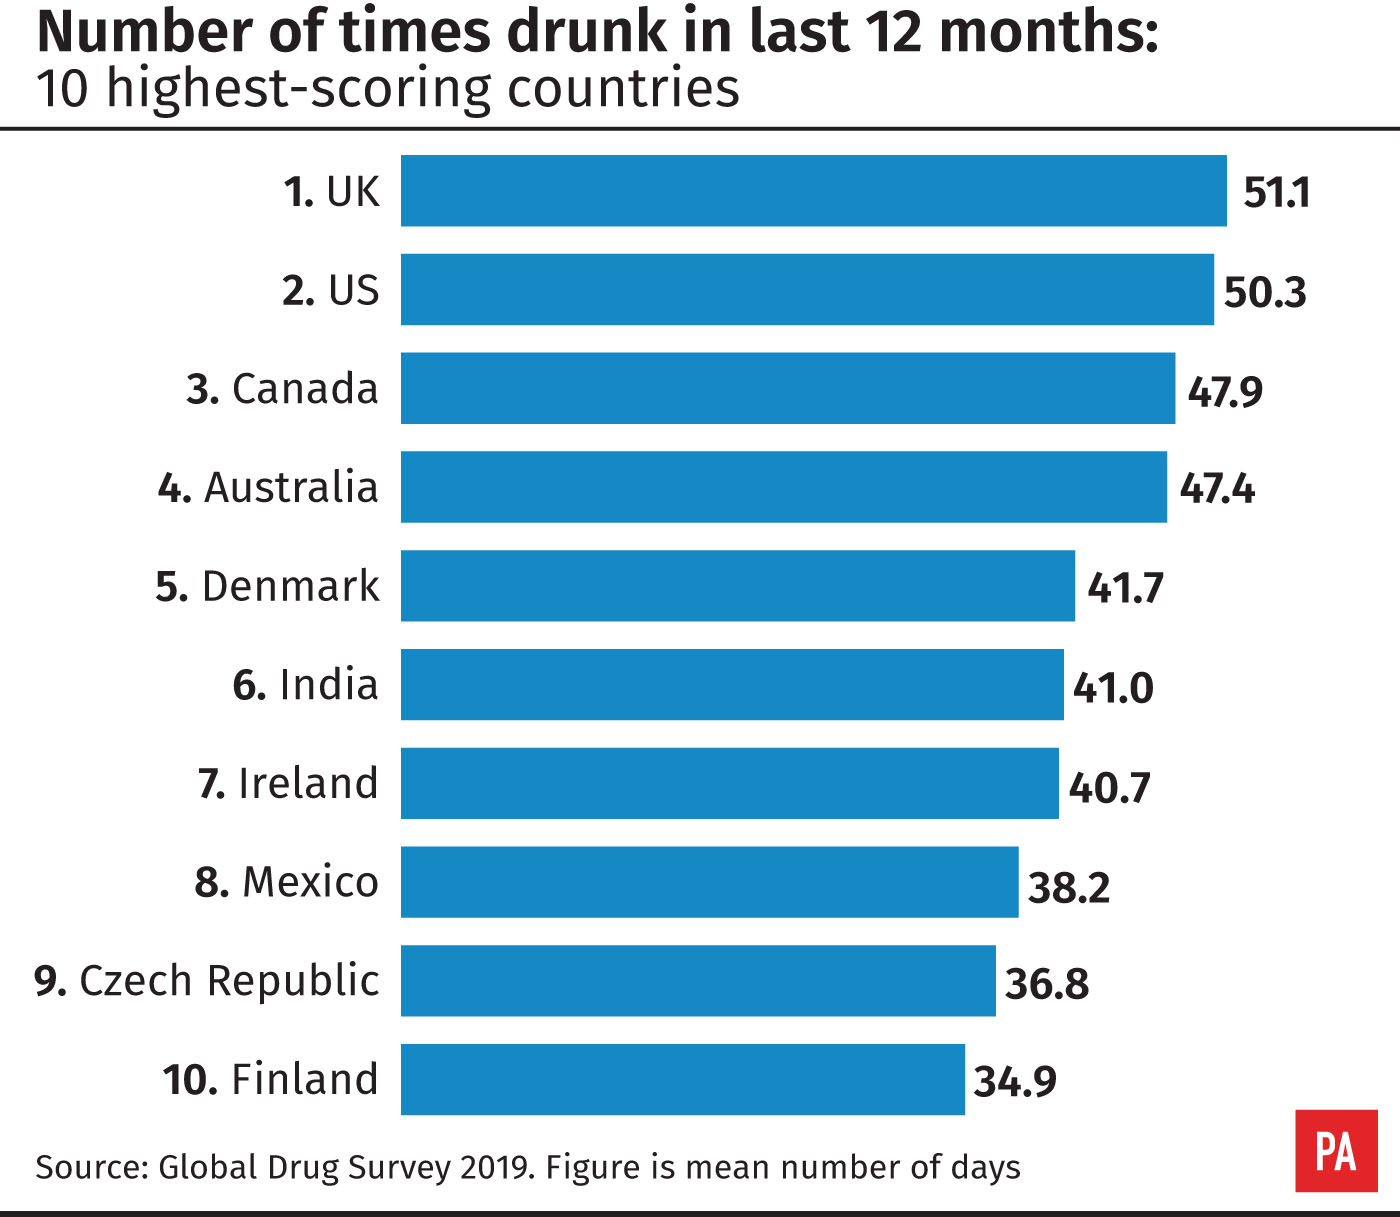 Number of times drunk in last 12 months: 10 highest scoring countries